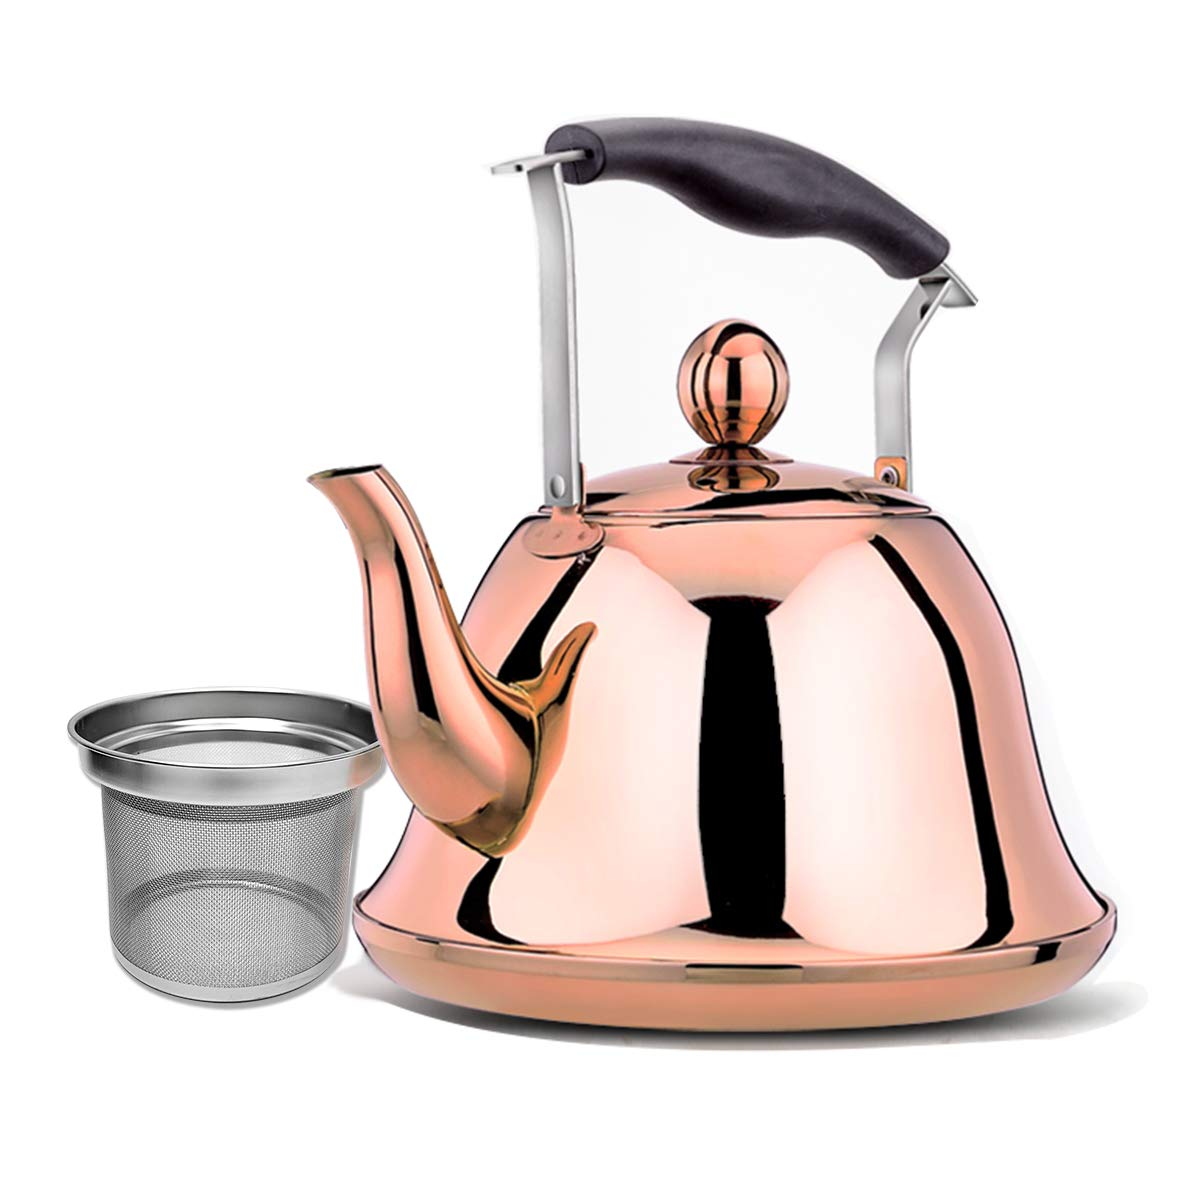 Rose gold Whistling Tea Kettle Stainless Steel Copper Stovetop Teakettle Sturdy Teapot for Tea Coffee Fast Boiling with Infuser Color Copper Mirror Finish 2 Liter / 2.1 Quart (Copper)